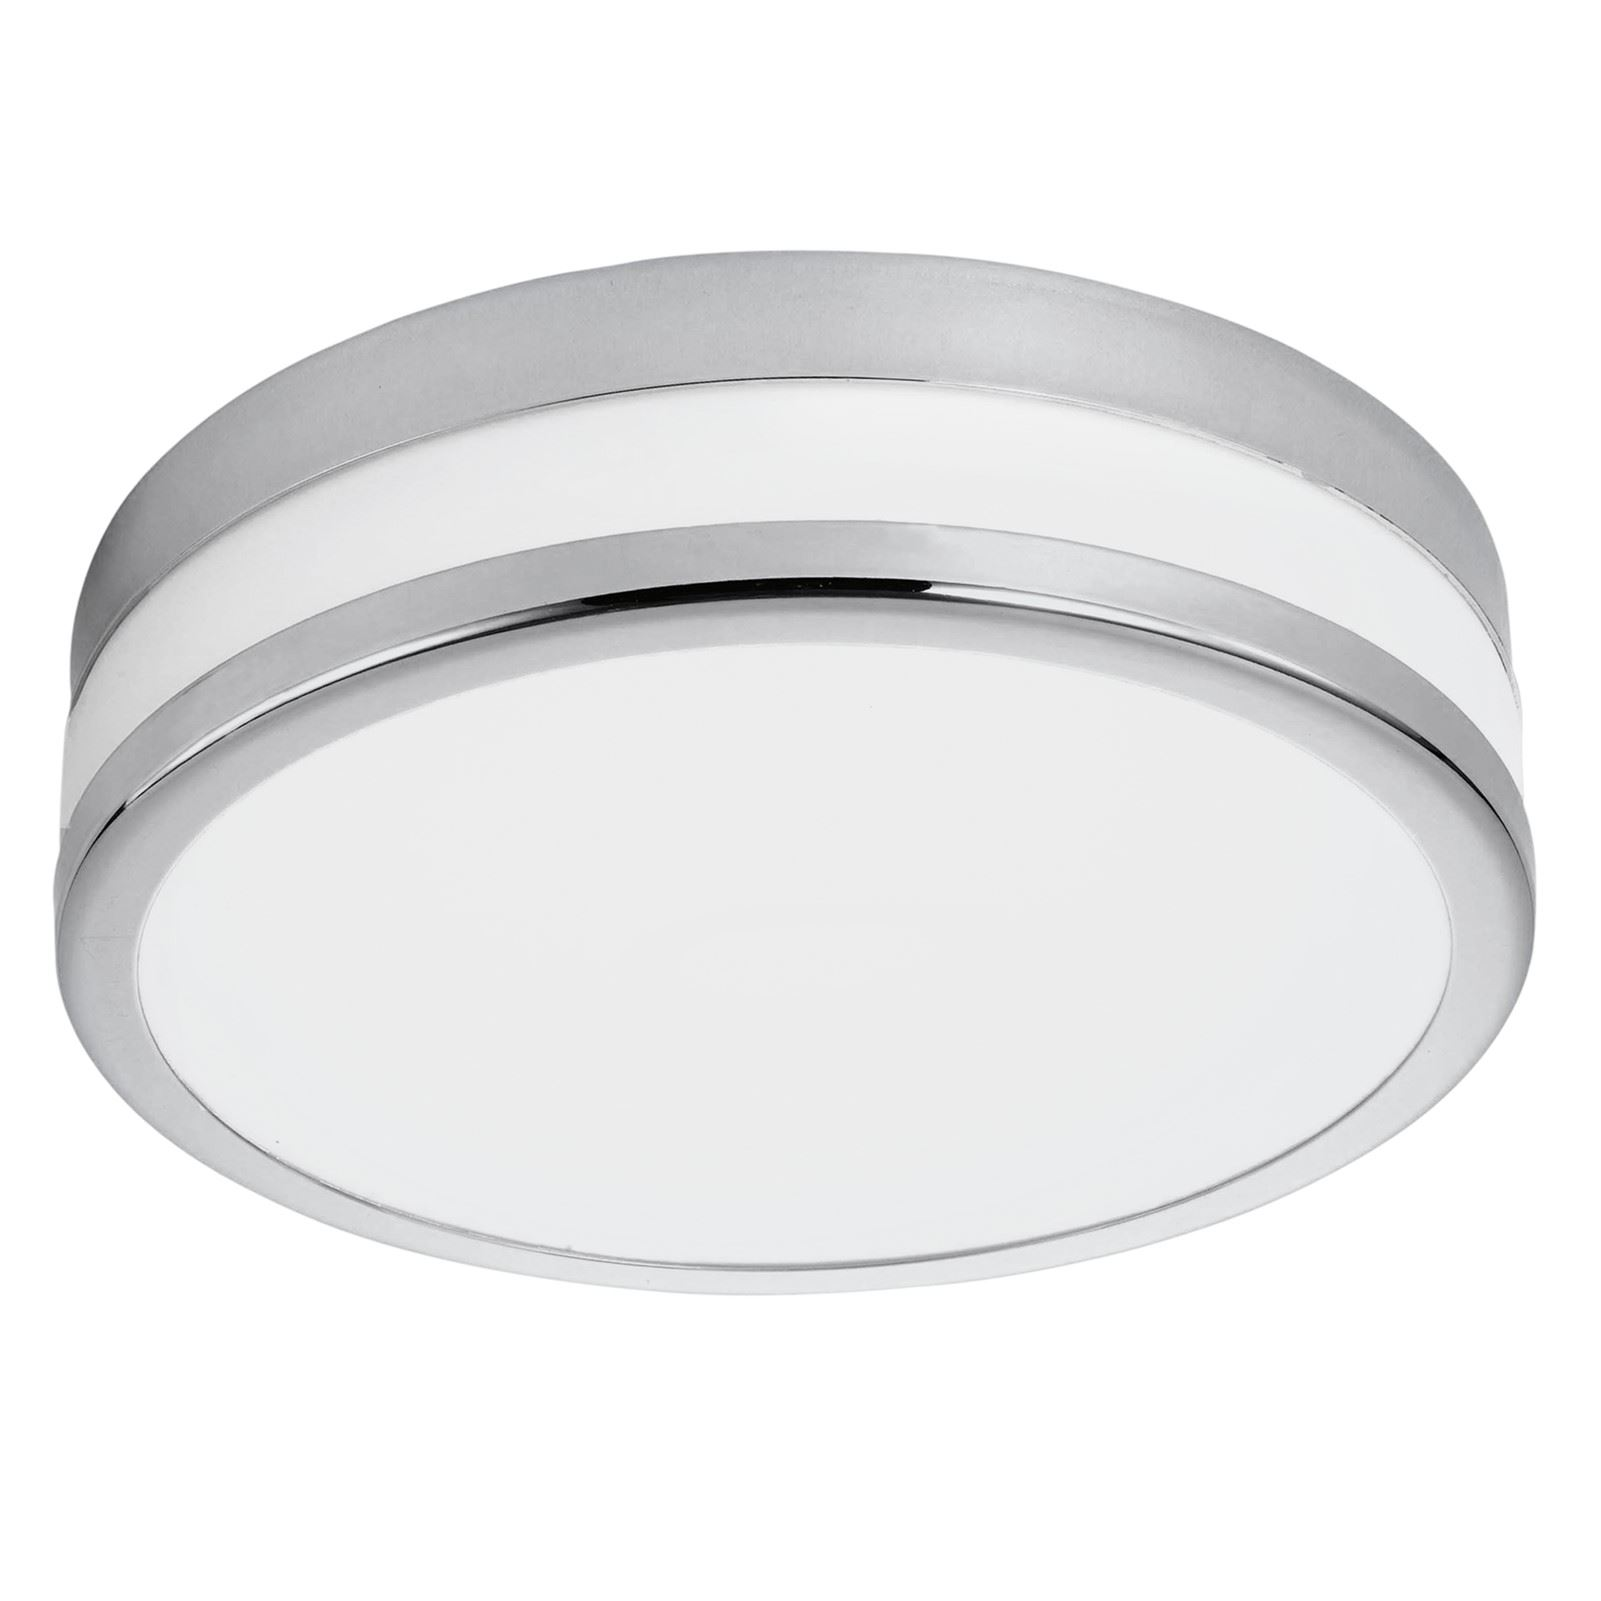 Palermo LED Ceiling Light Steel Chrome Coated White Shade Dia 295 mm